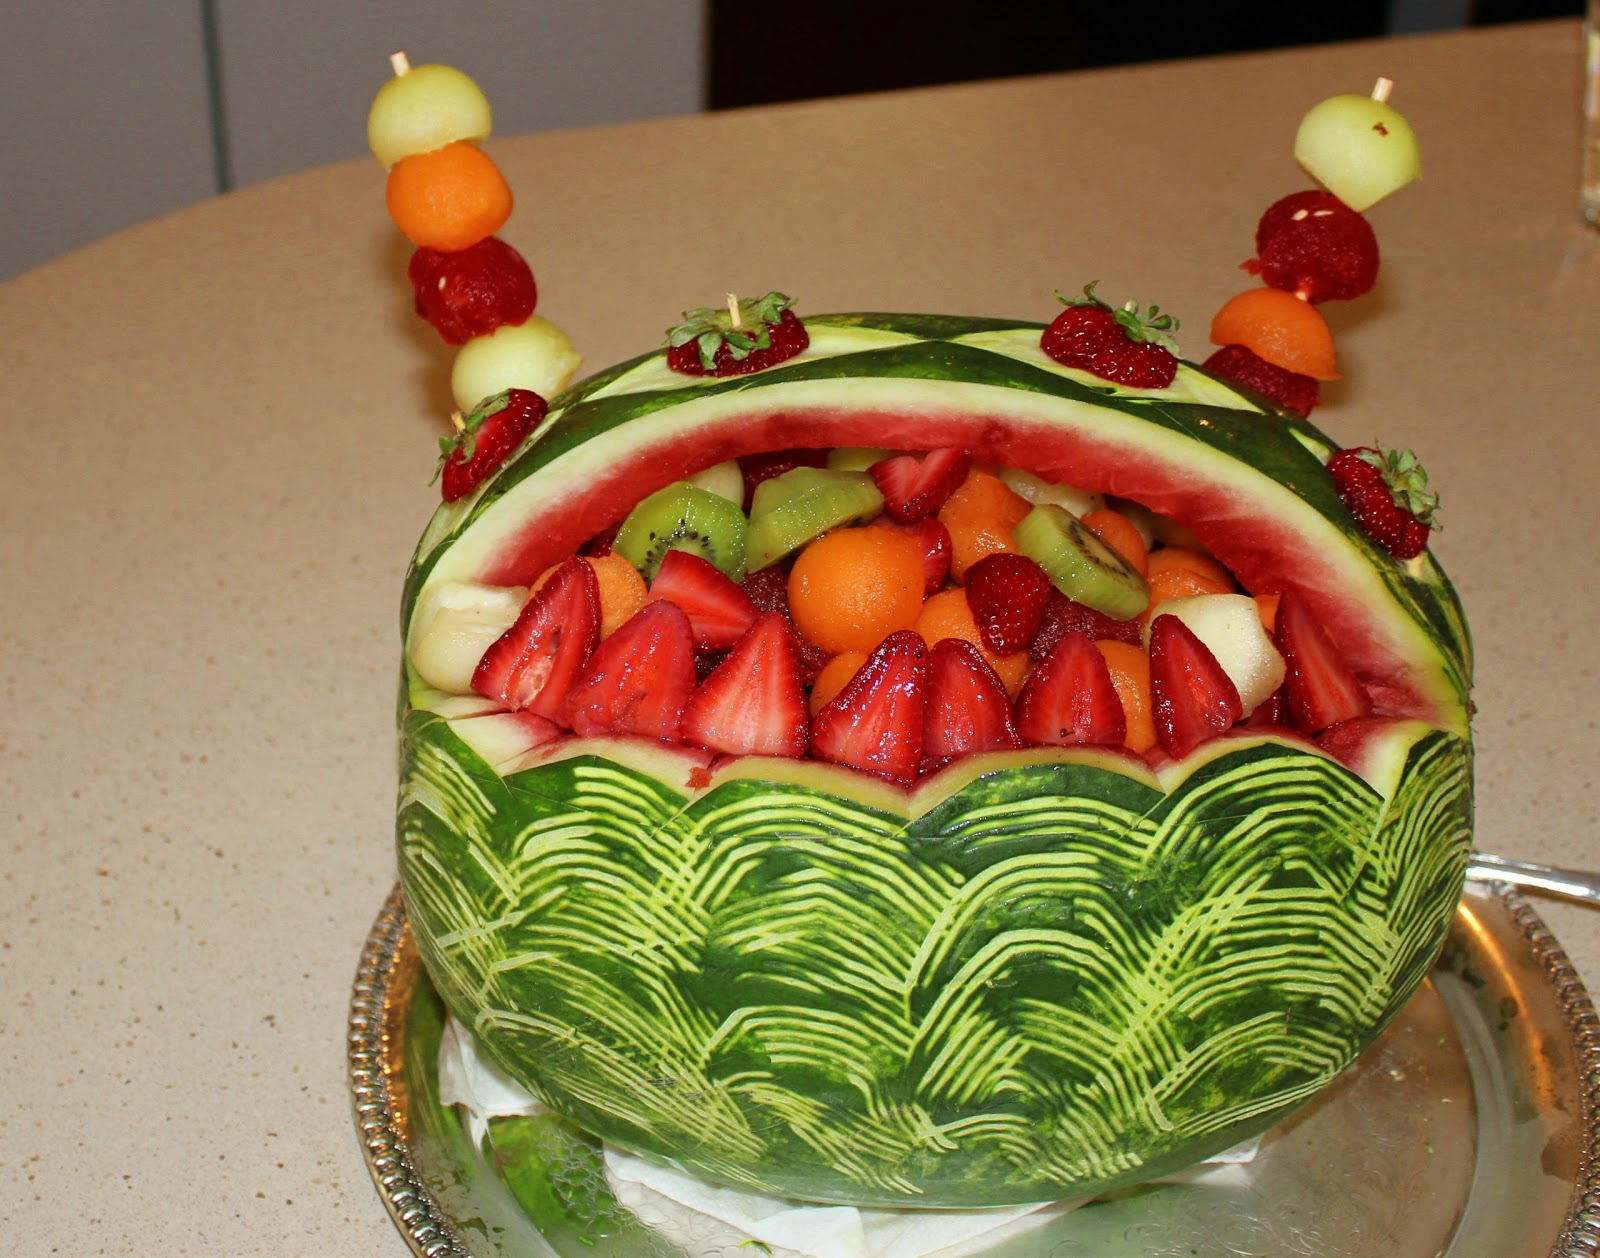 My cool kid cooks teens fruit salad basket carving idea